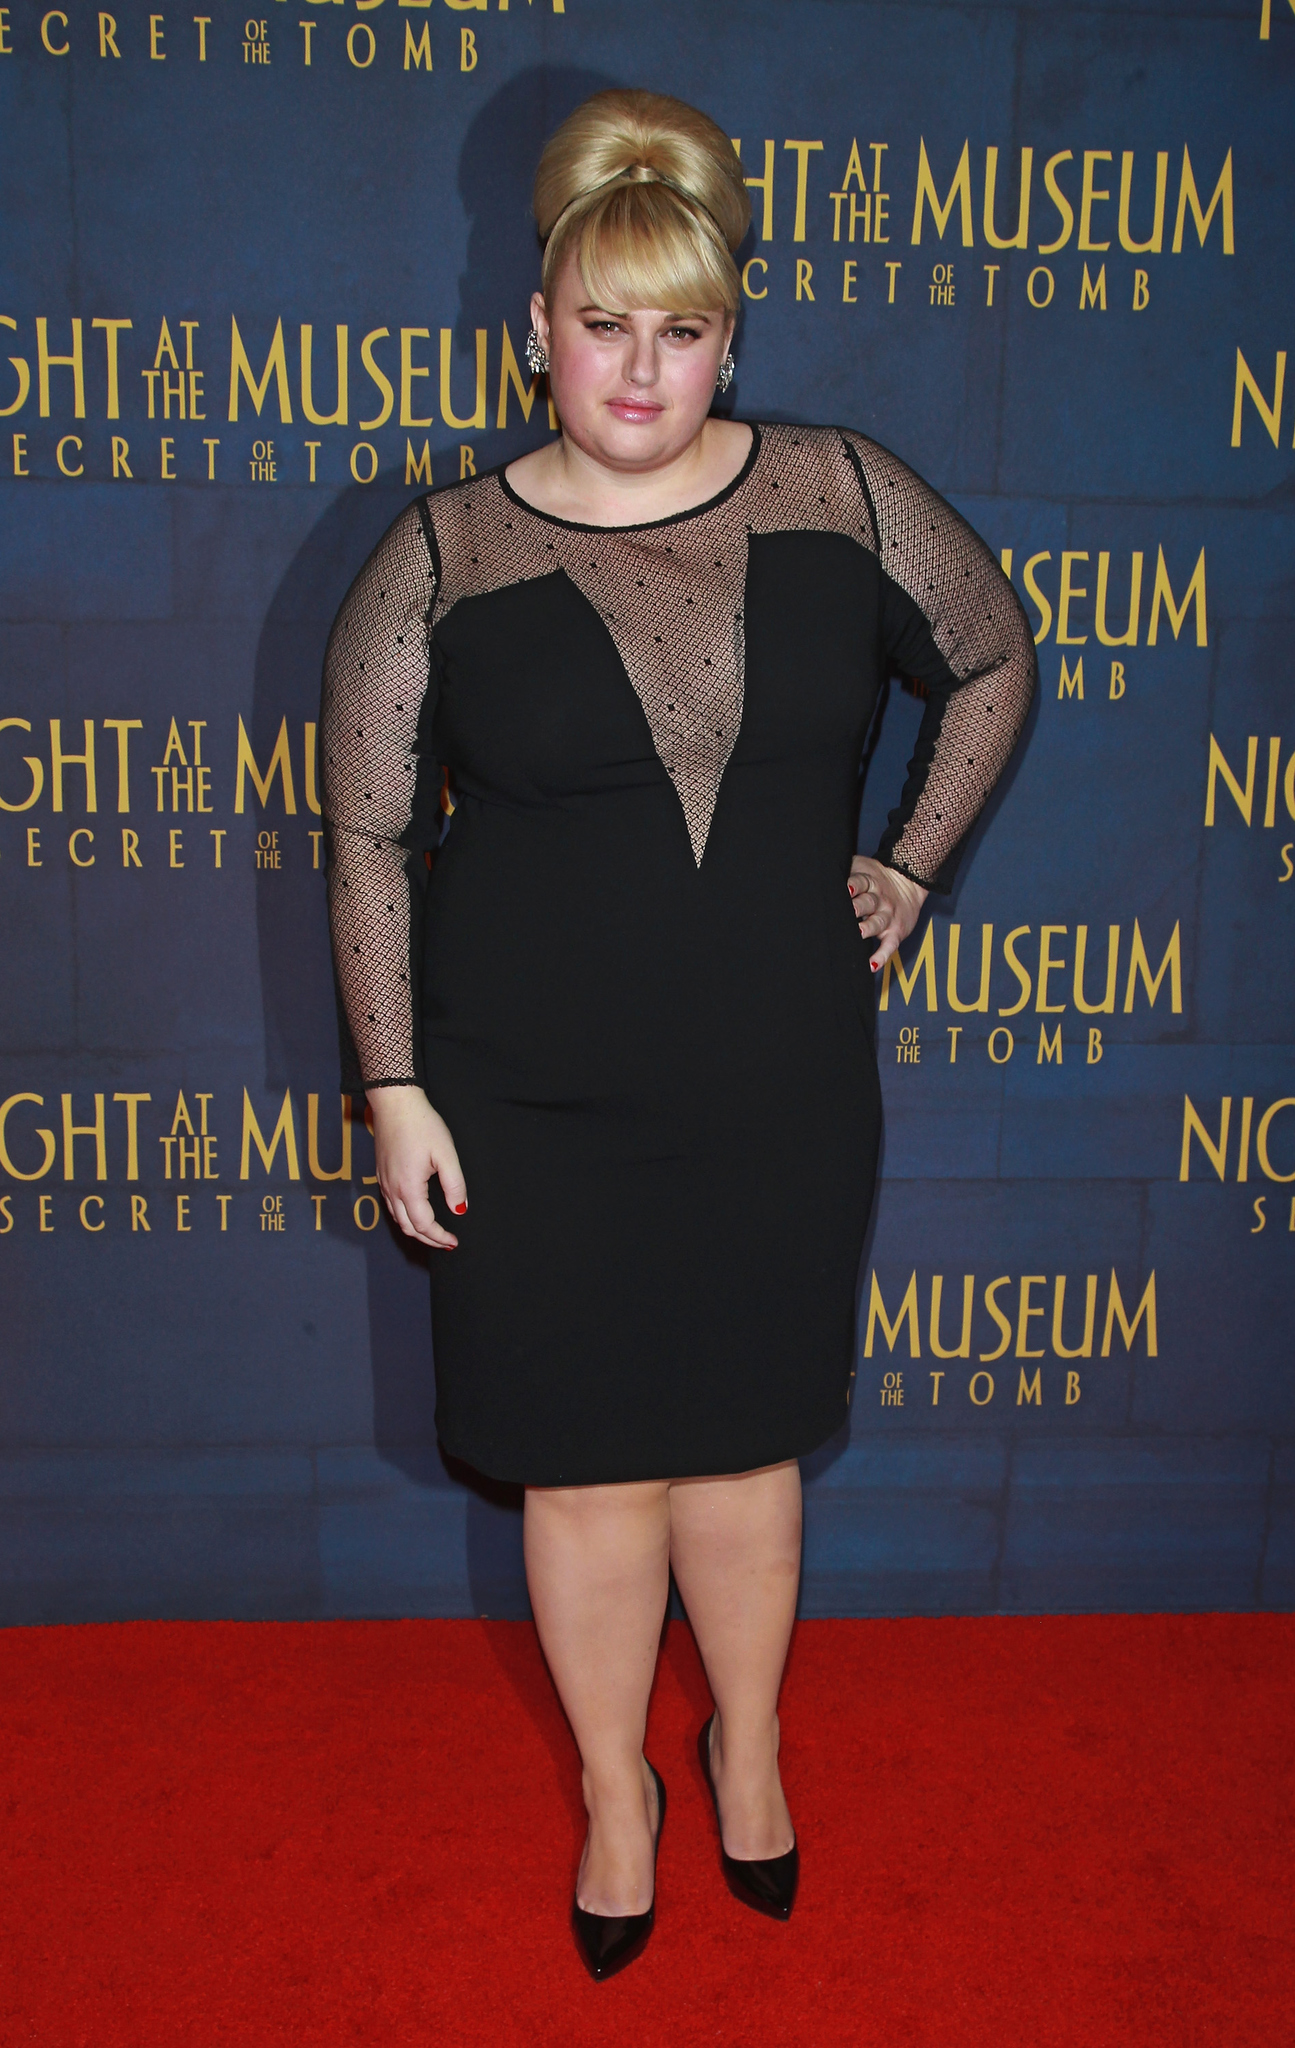 Rebel Wilson at an event for Night at the Museum: Secret of the Tomb (2014)